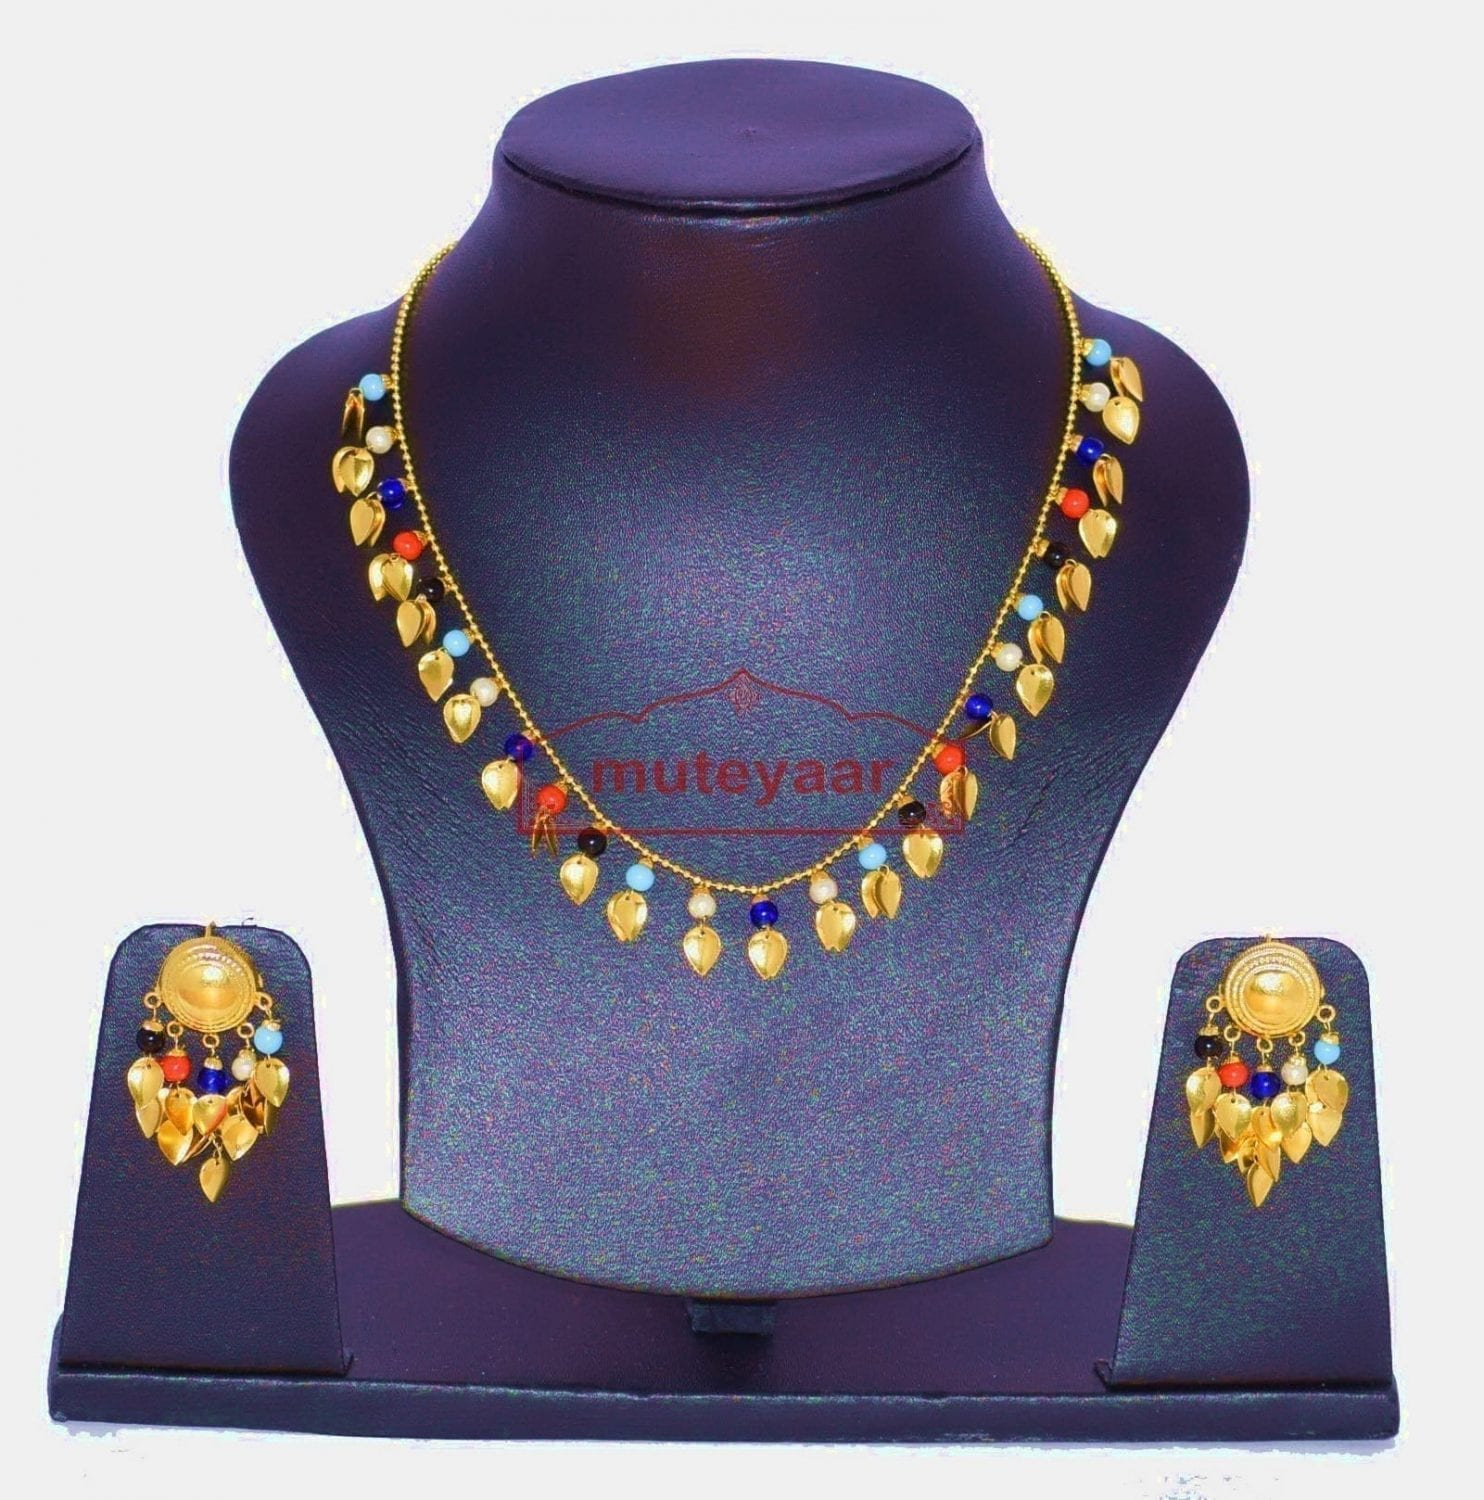 24 Ct. Gold Plated Traditional Punjabi chain set with Moti Beads J0134 1